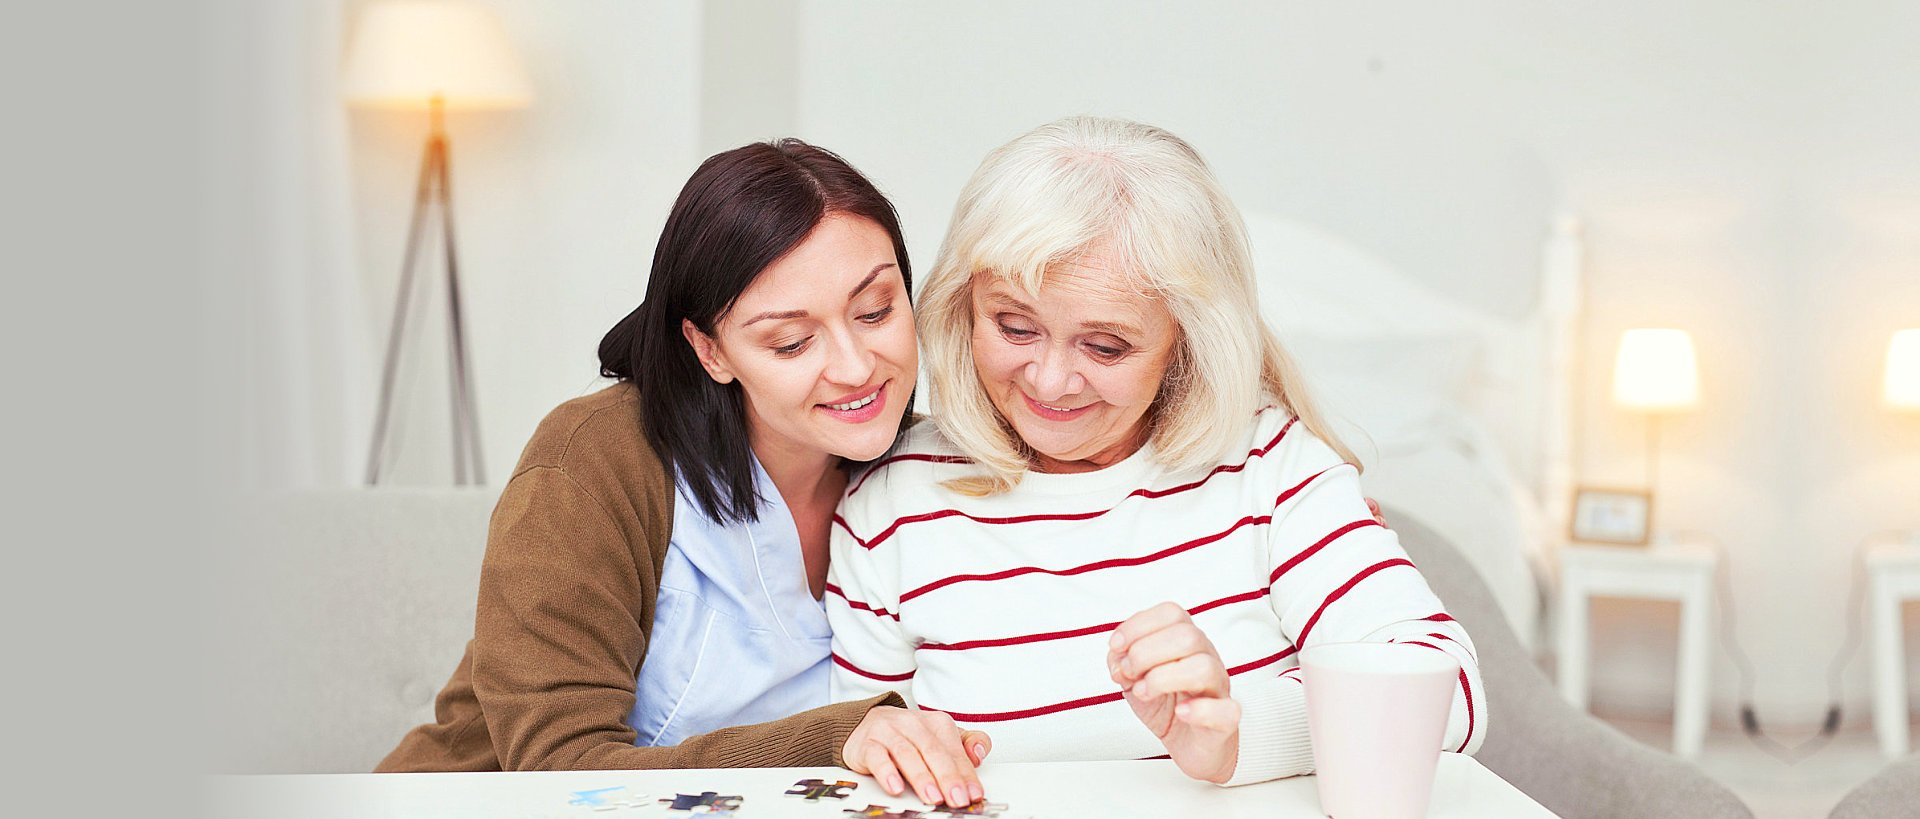 nurse and elderly woman playing jigsaw puzzle